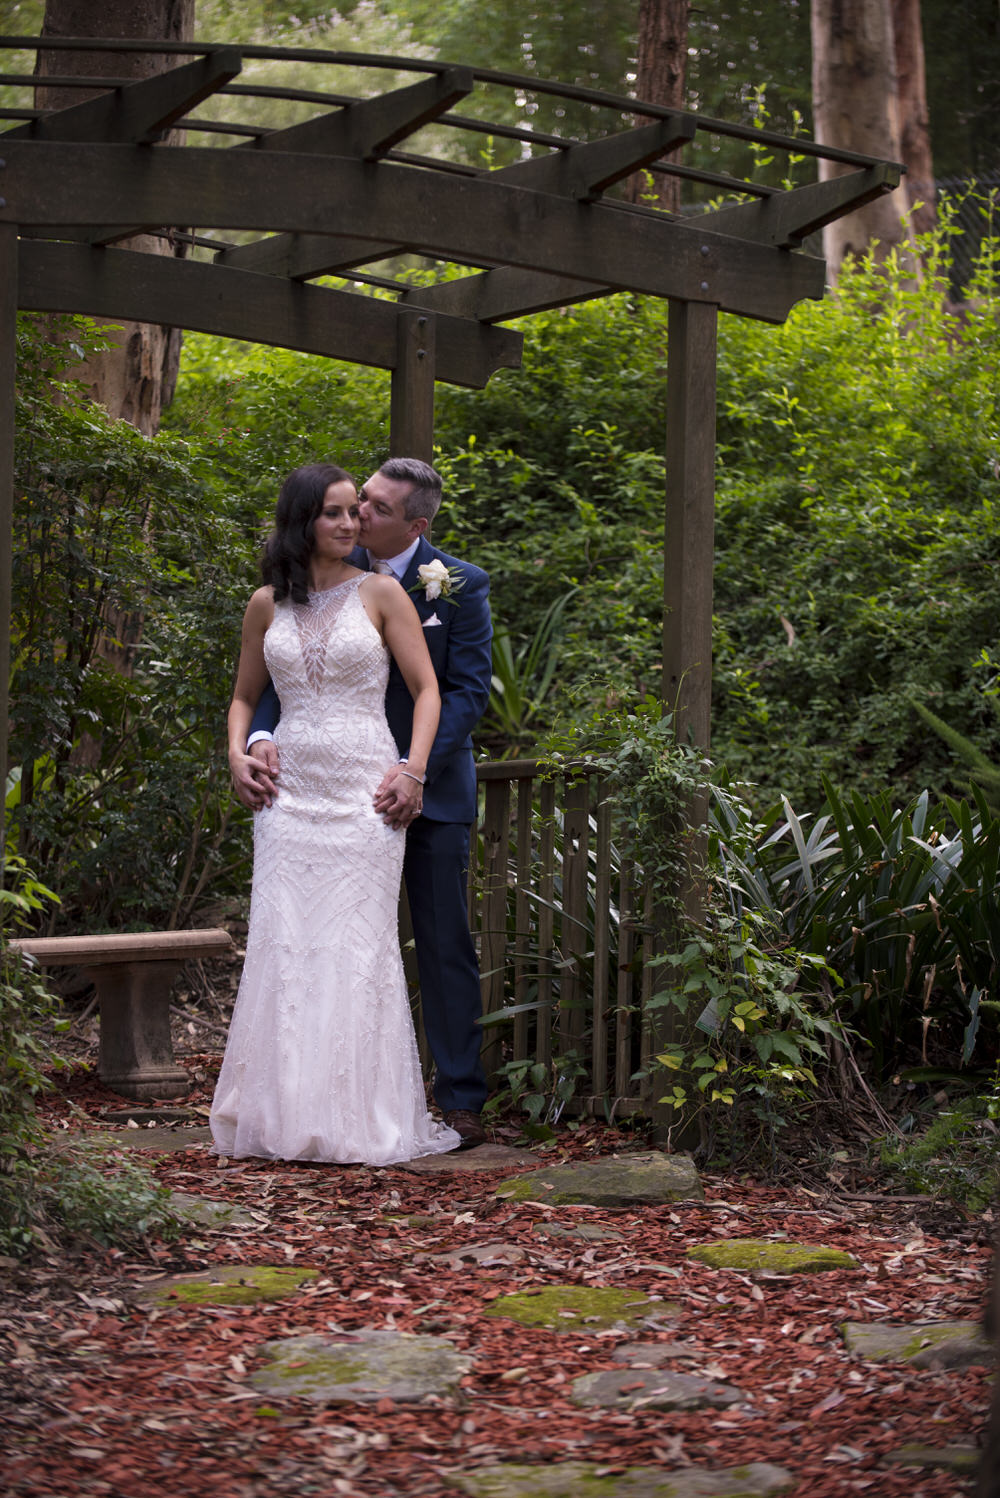 A Beautiful Relaxed Lunchtime Wedding In The Sydney Hills With Garden Theme